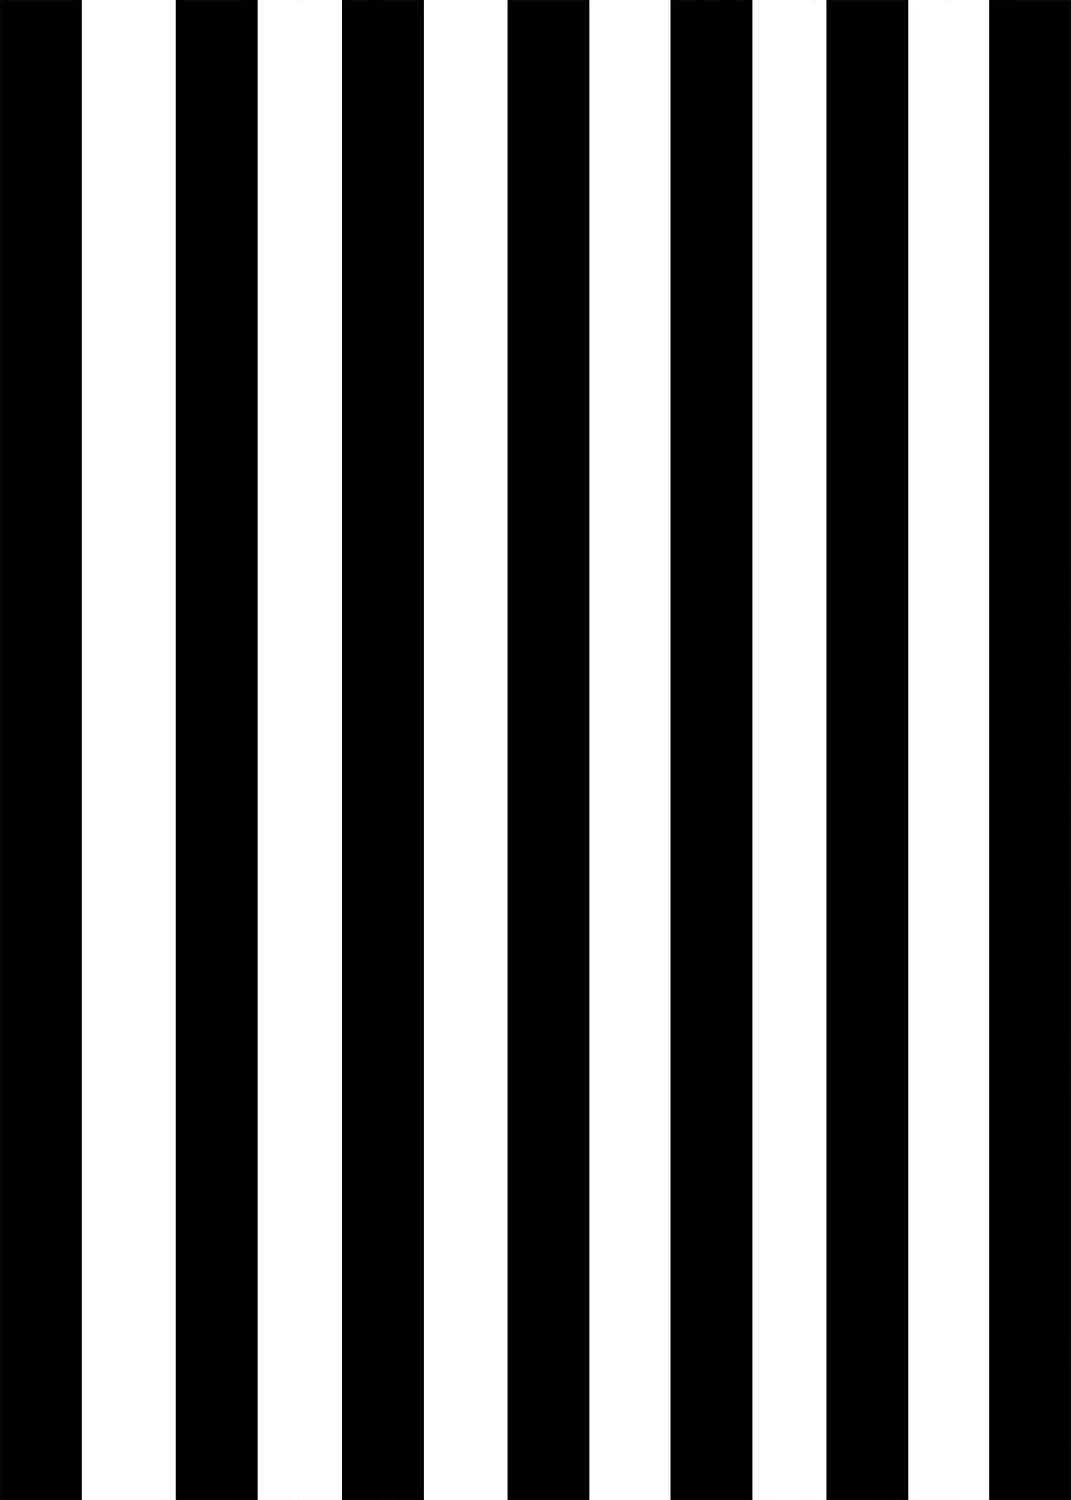 LYLYCTY 7x5ft White Radiation Stripe Background Letter R Black Background Black and White Simple Style for Campaign Theme Publicity Photo Photography Background LYZY0945